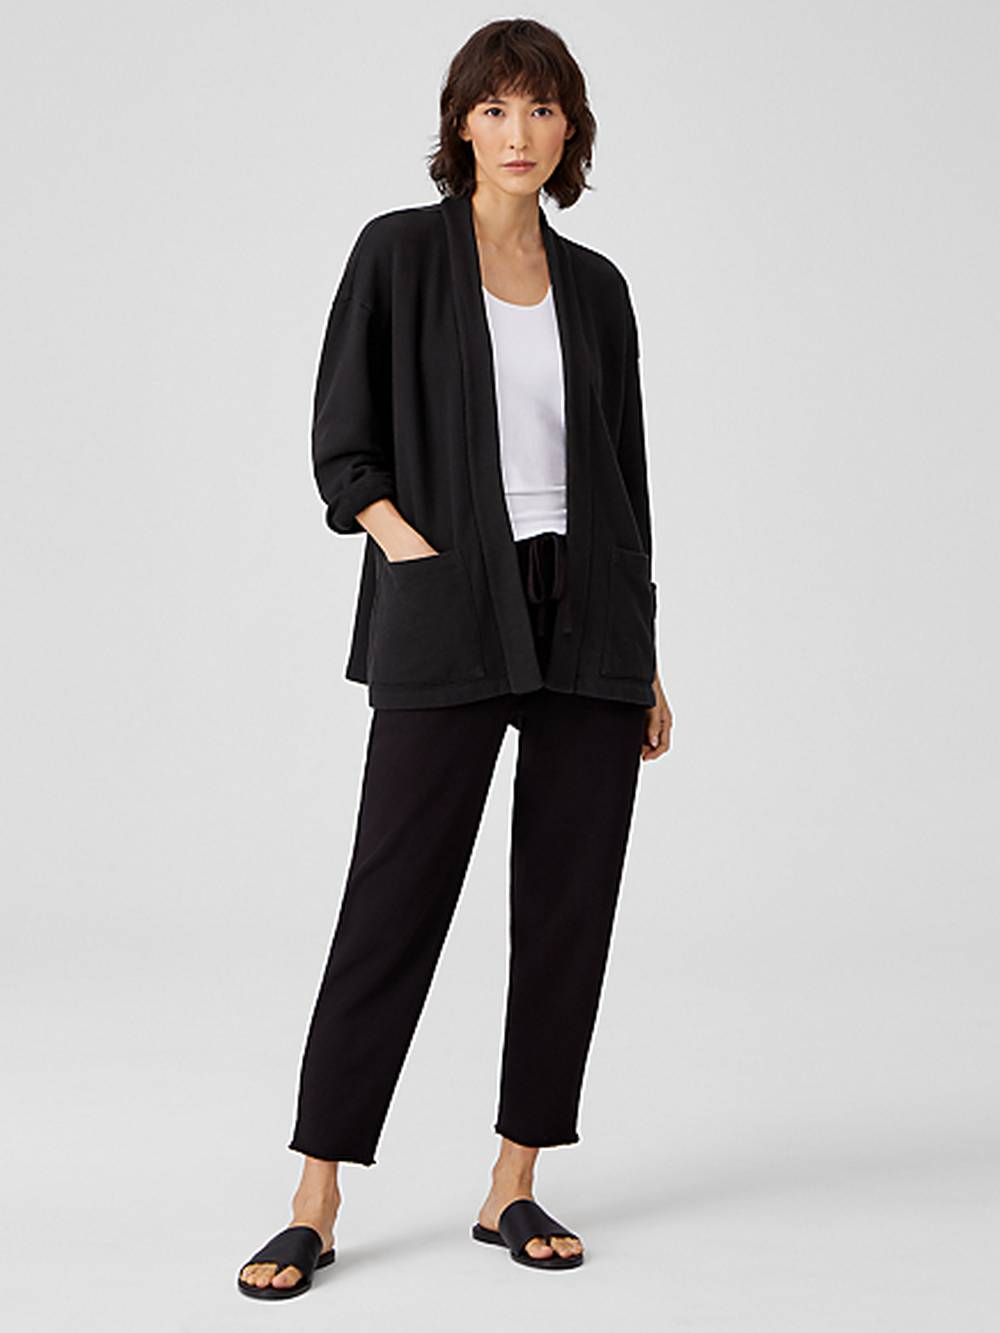 eileen fisher innovative clothing brand